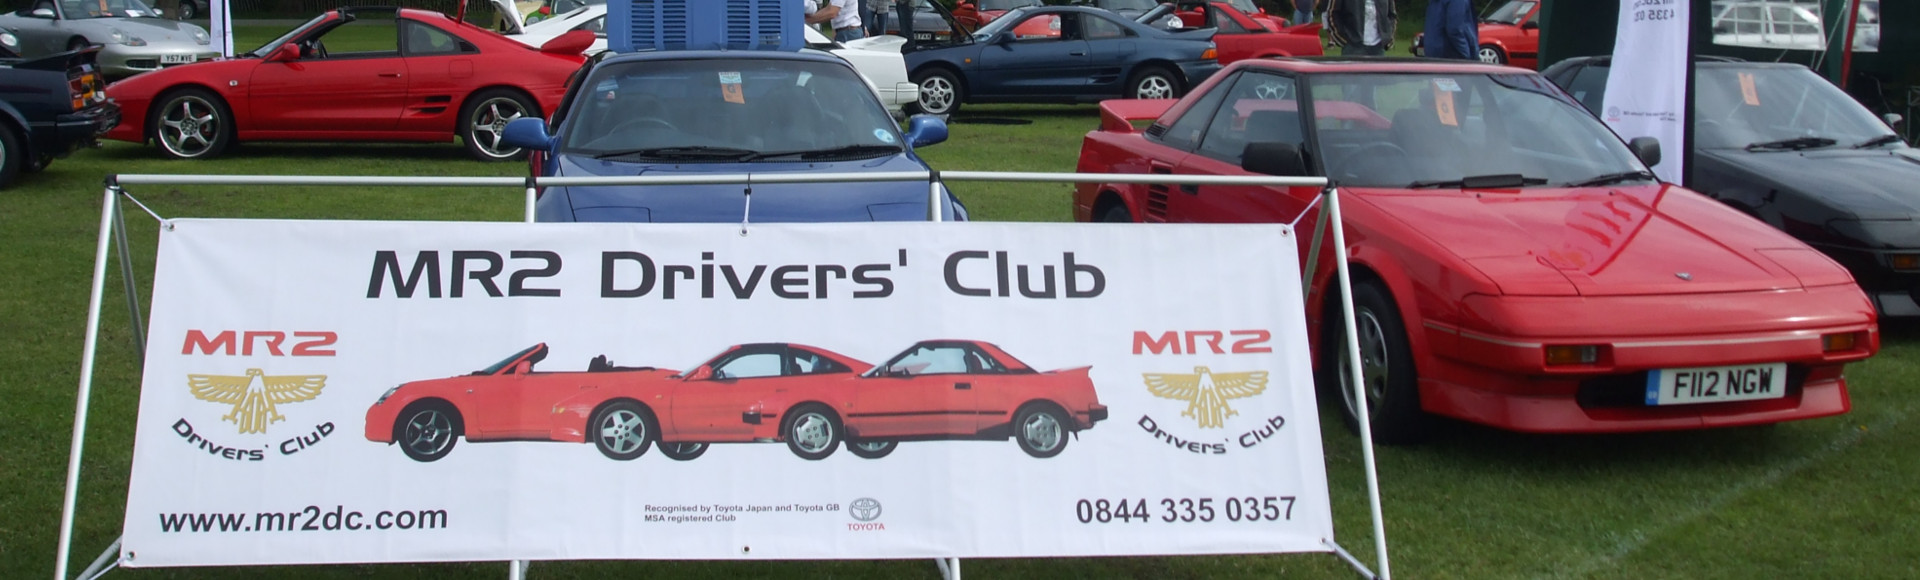 The MR2 Drivers' Club